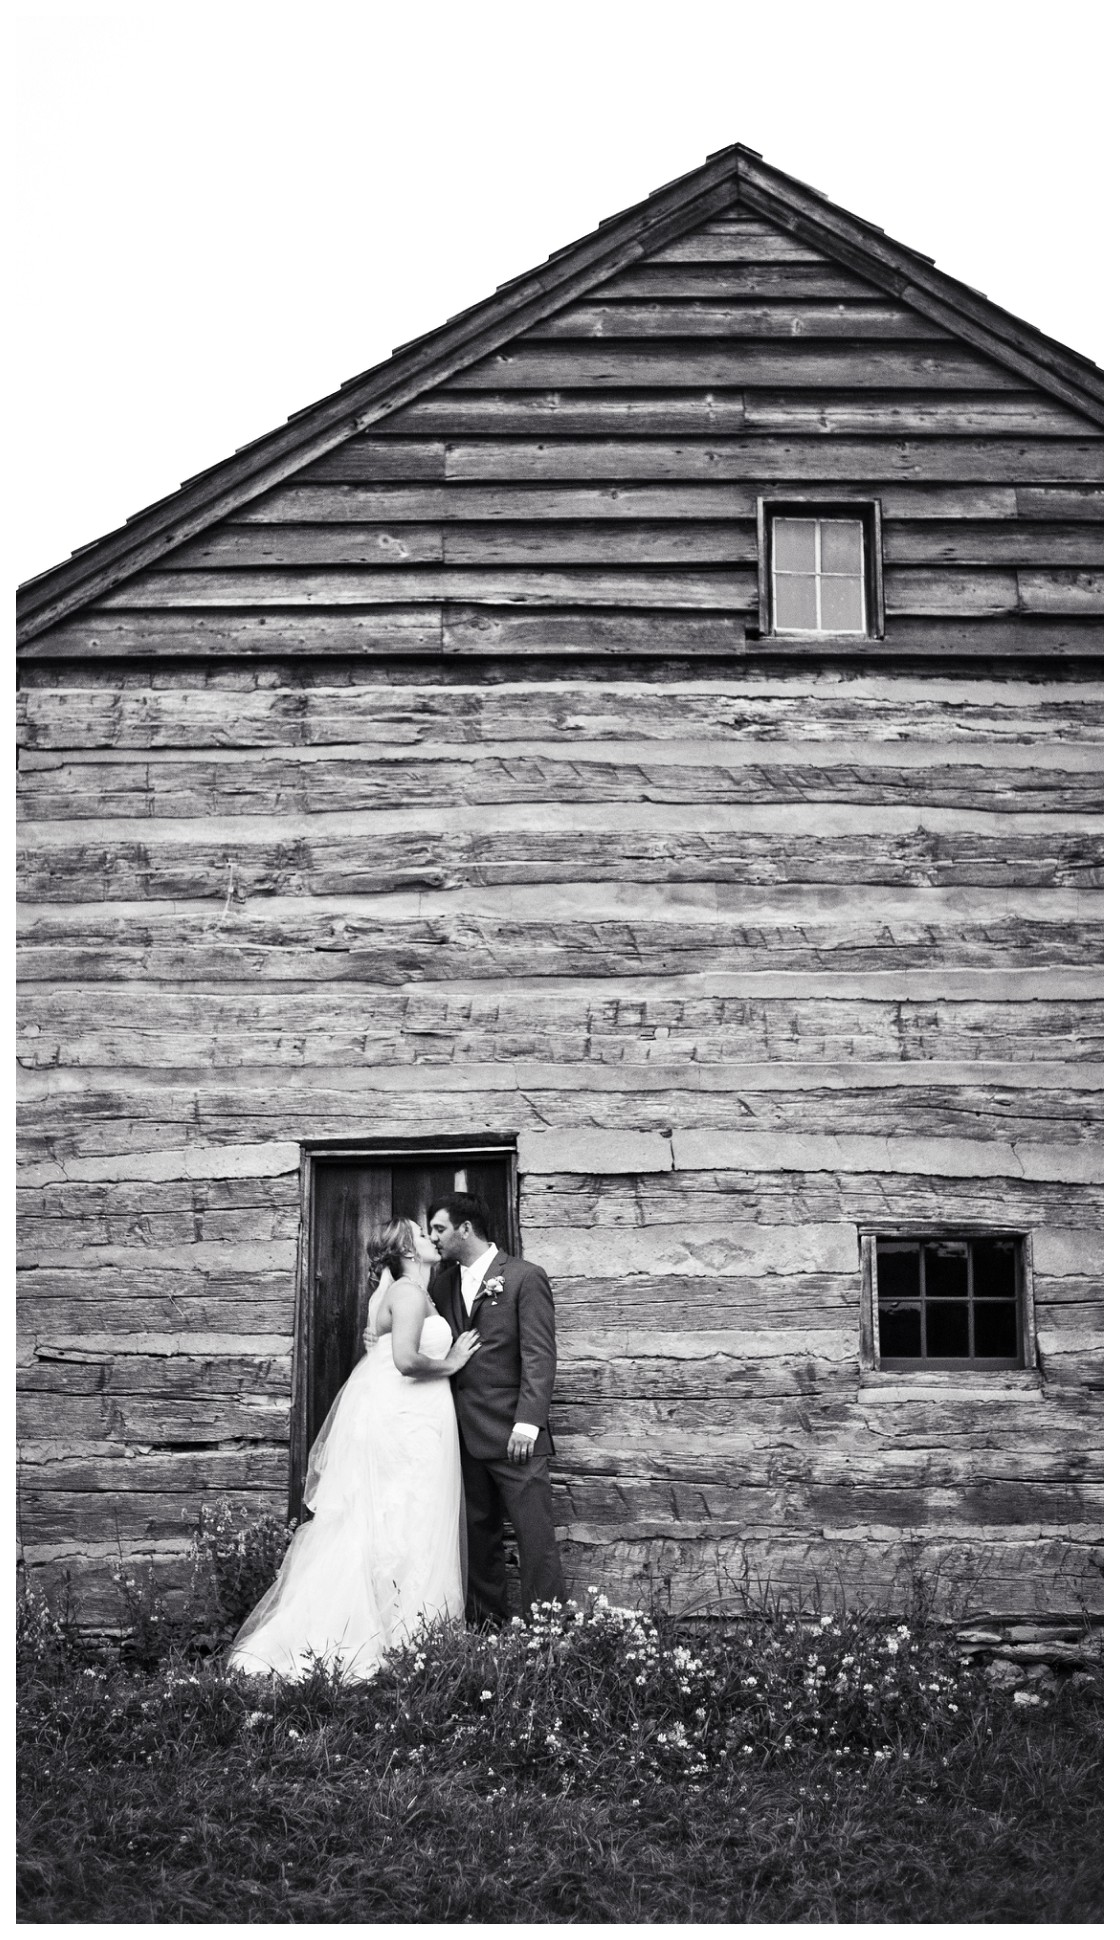 Classic black and white image of wedding couple at the door of a log cabin